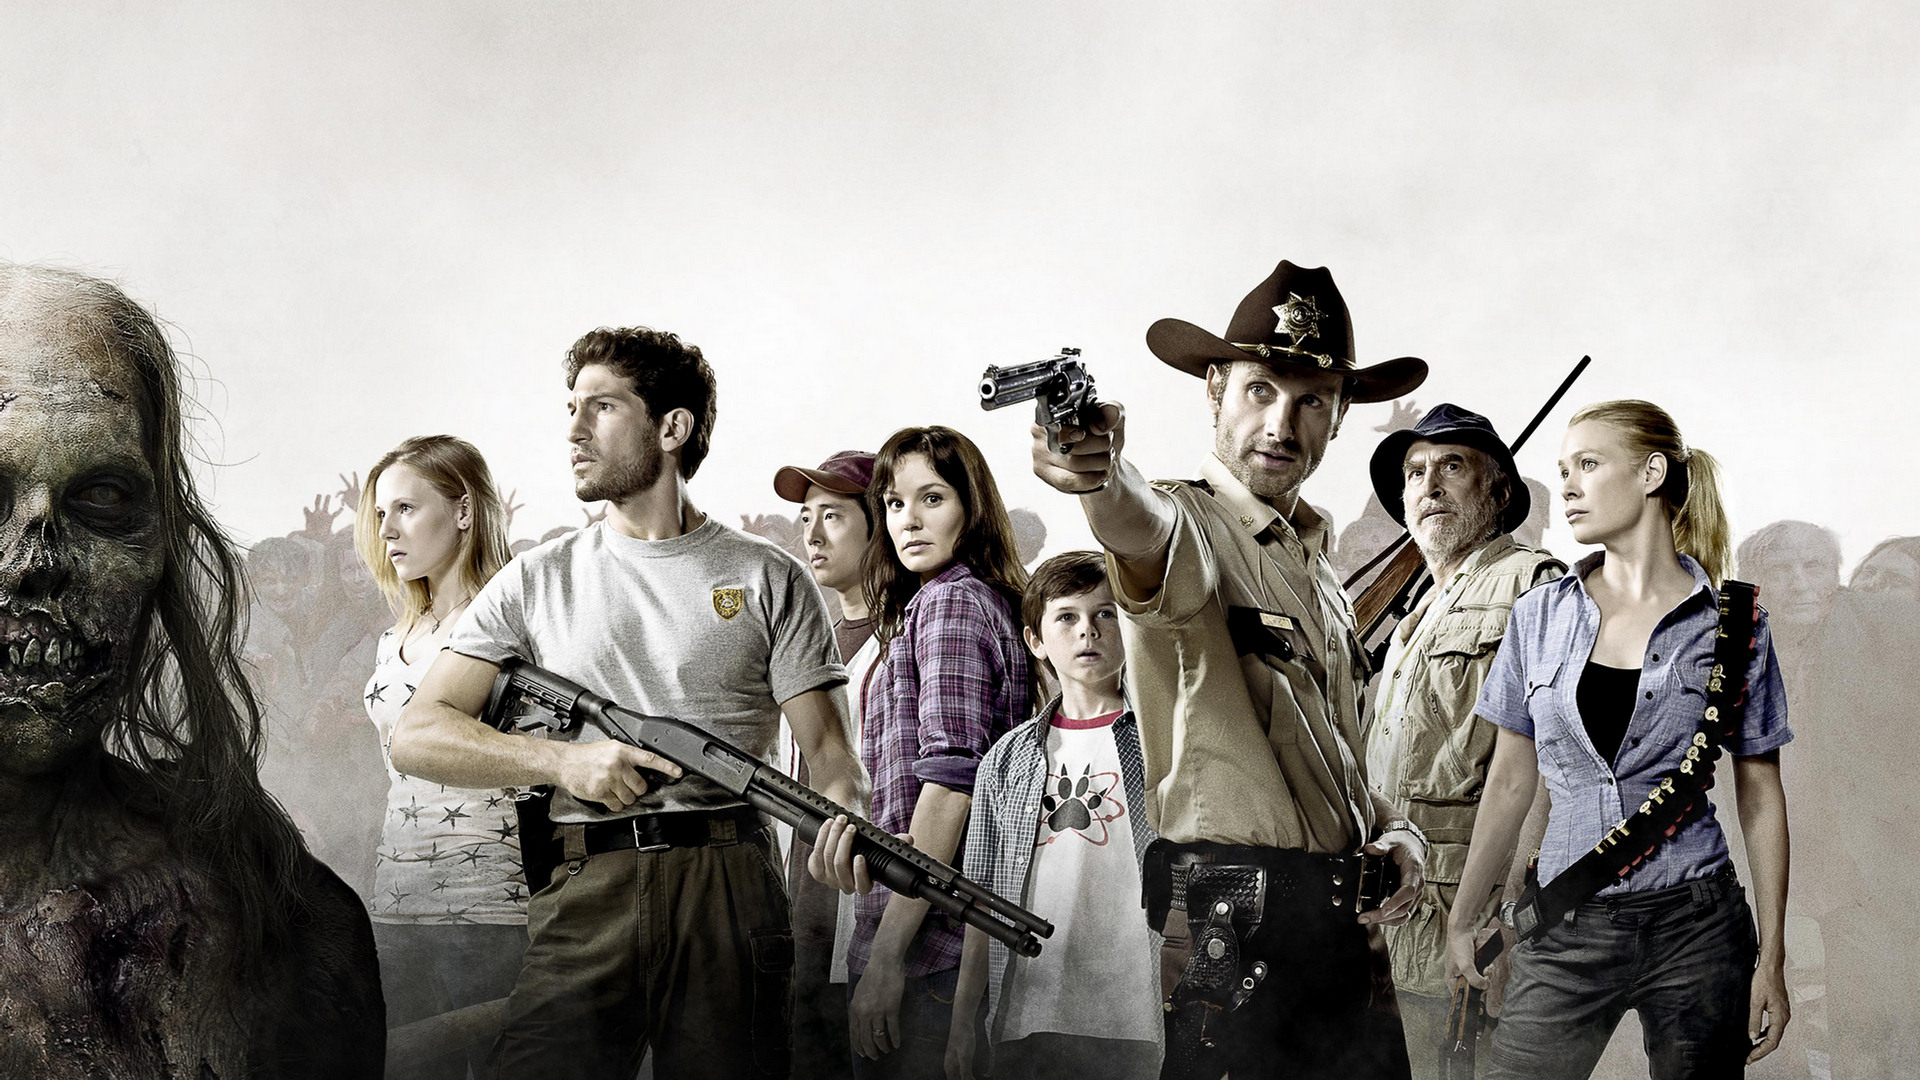 the walking dead hd - wallpaper, high definition, high quality